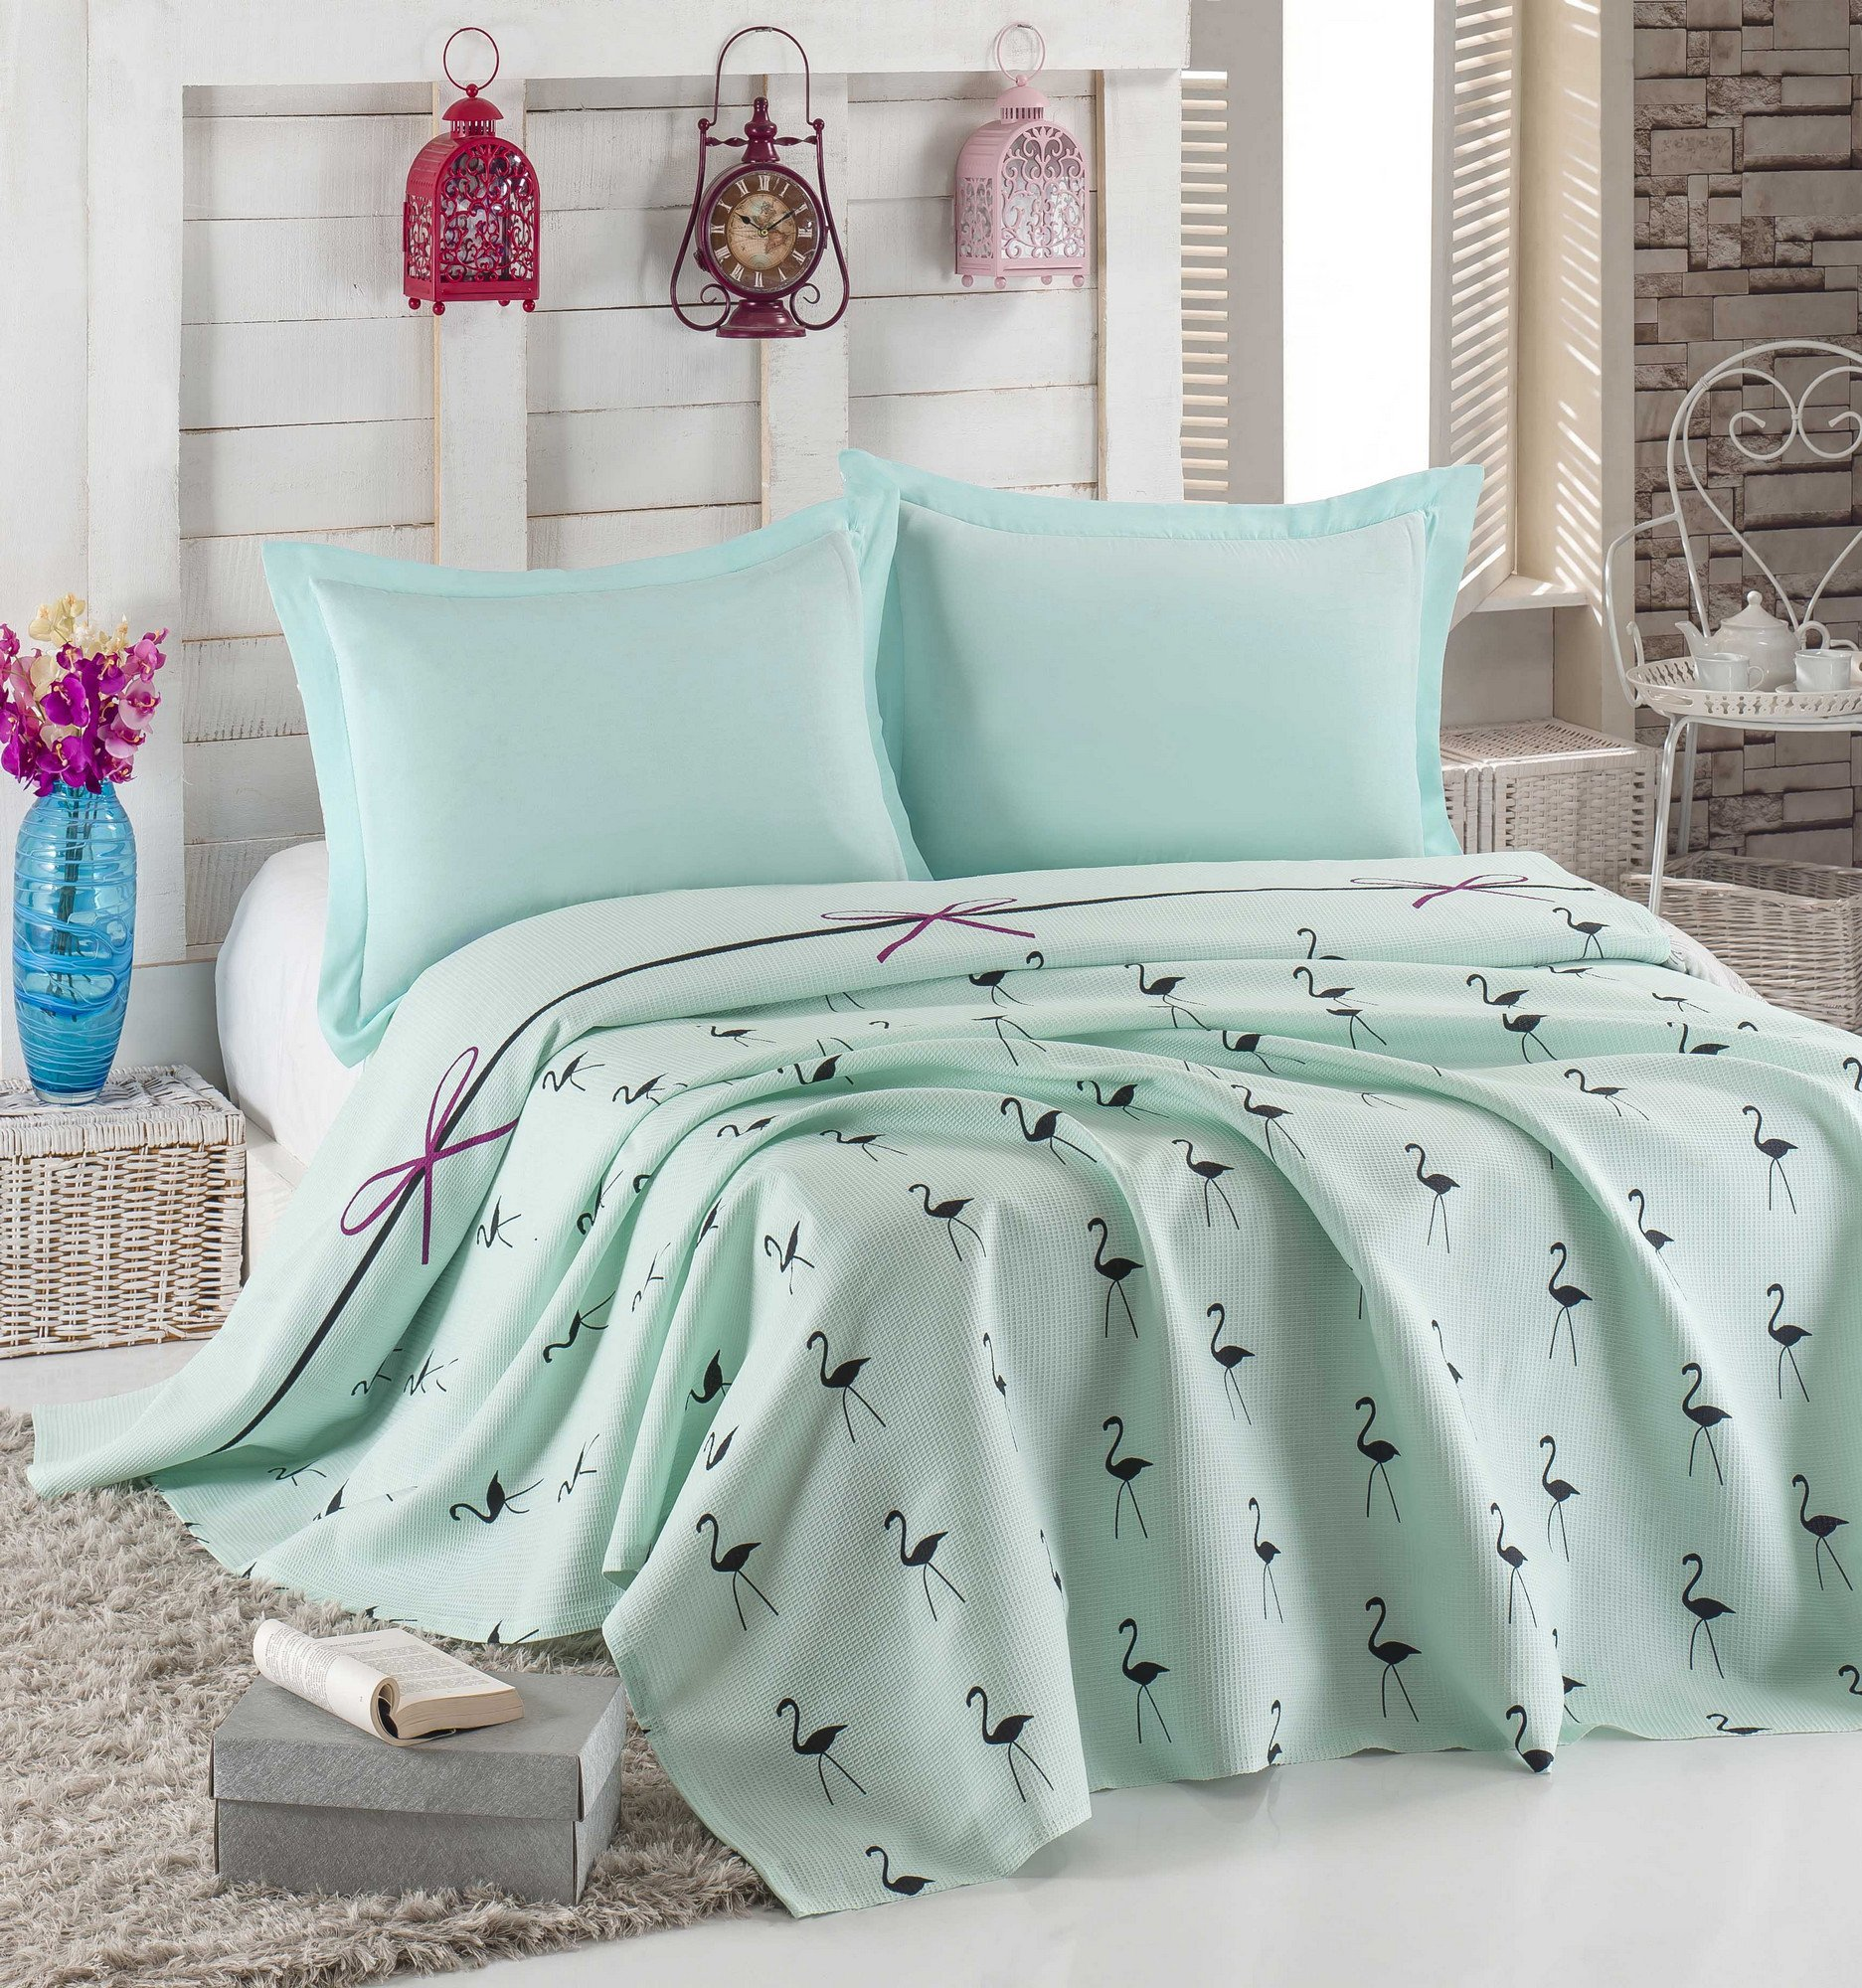 LaModaHome Luxury Soft Colored Twin and Single Bedroom Bedding 100% Cotton Single Coverlet (Pique) Thin Coverlet Summer/Flamingo Line Rope Bowtie Animal Turqoise Background